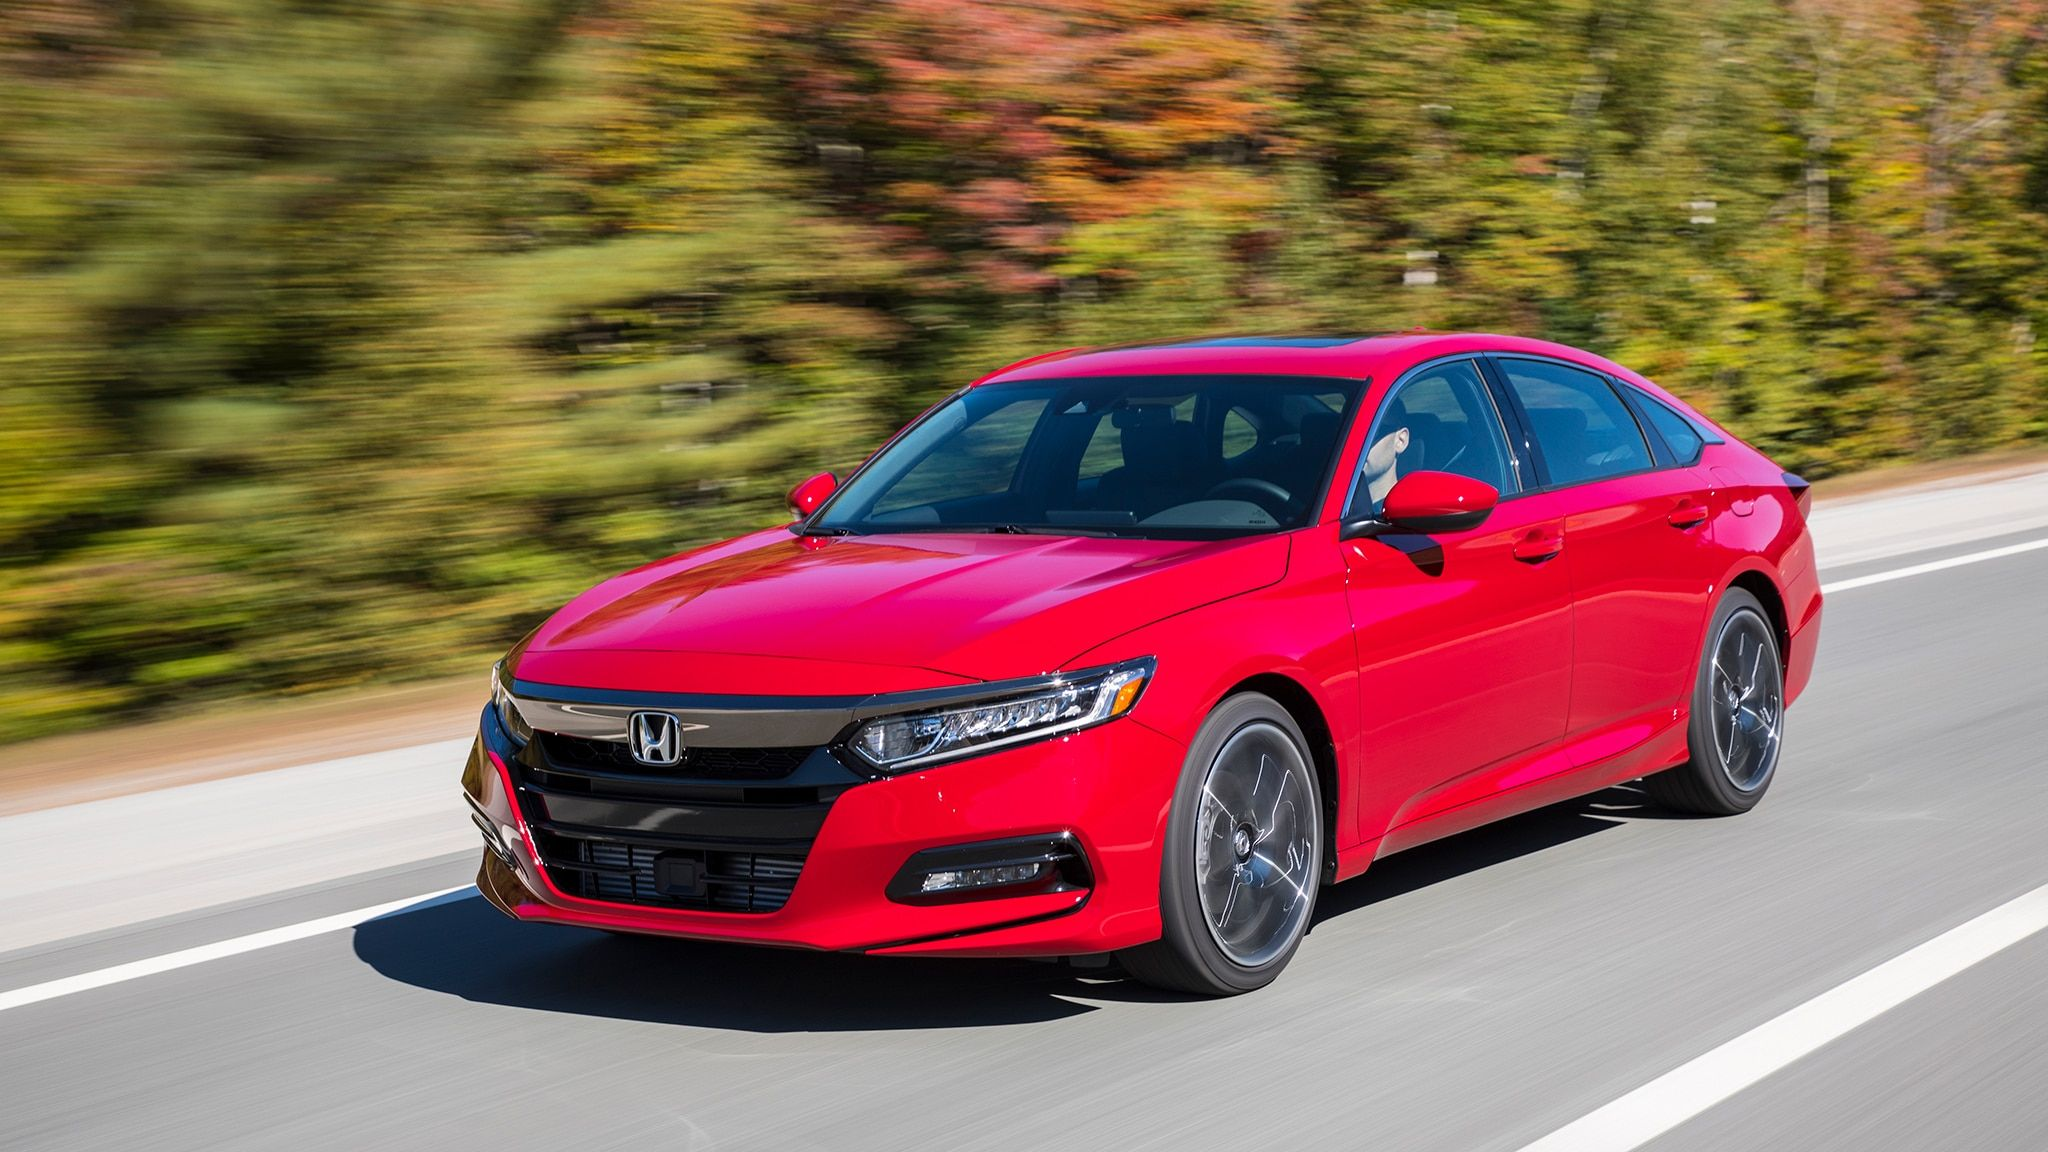 The Honda Accord is the handsdown benchmark in its